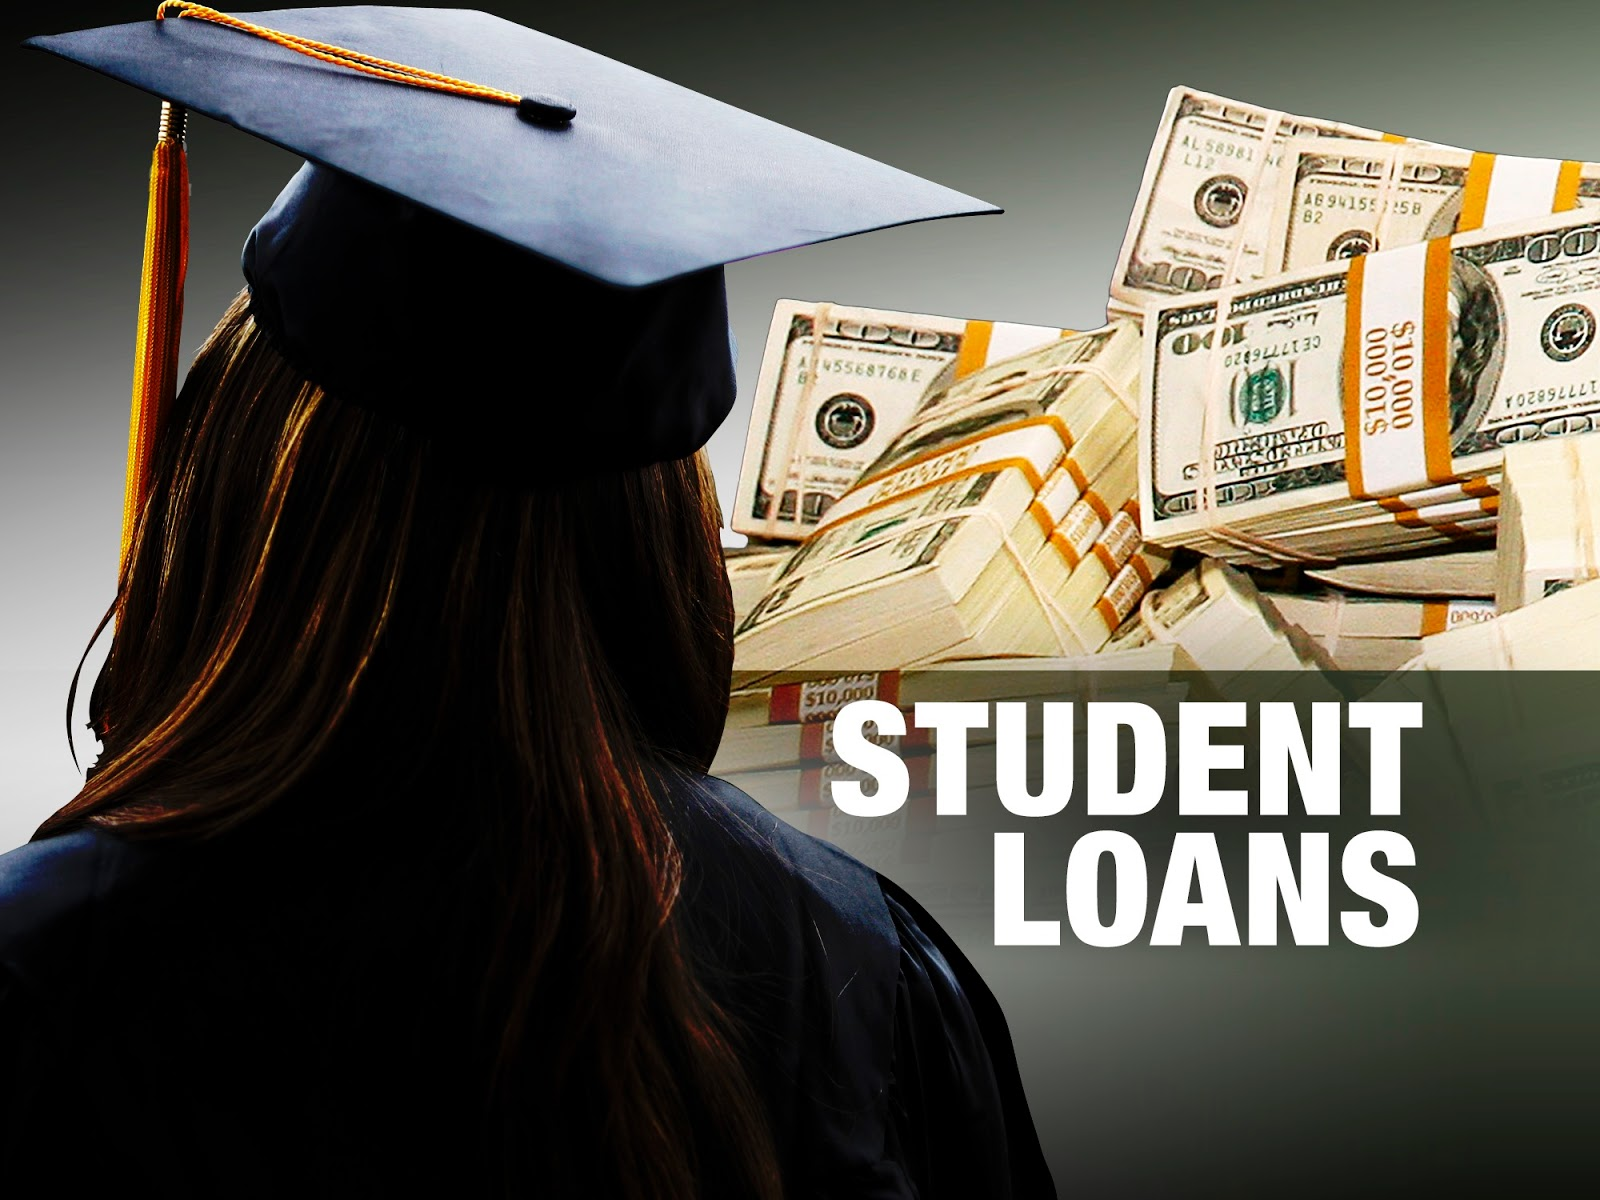 How can students qualify for bank loans?